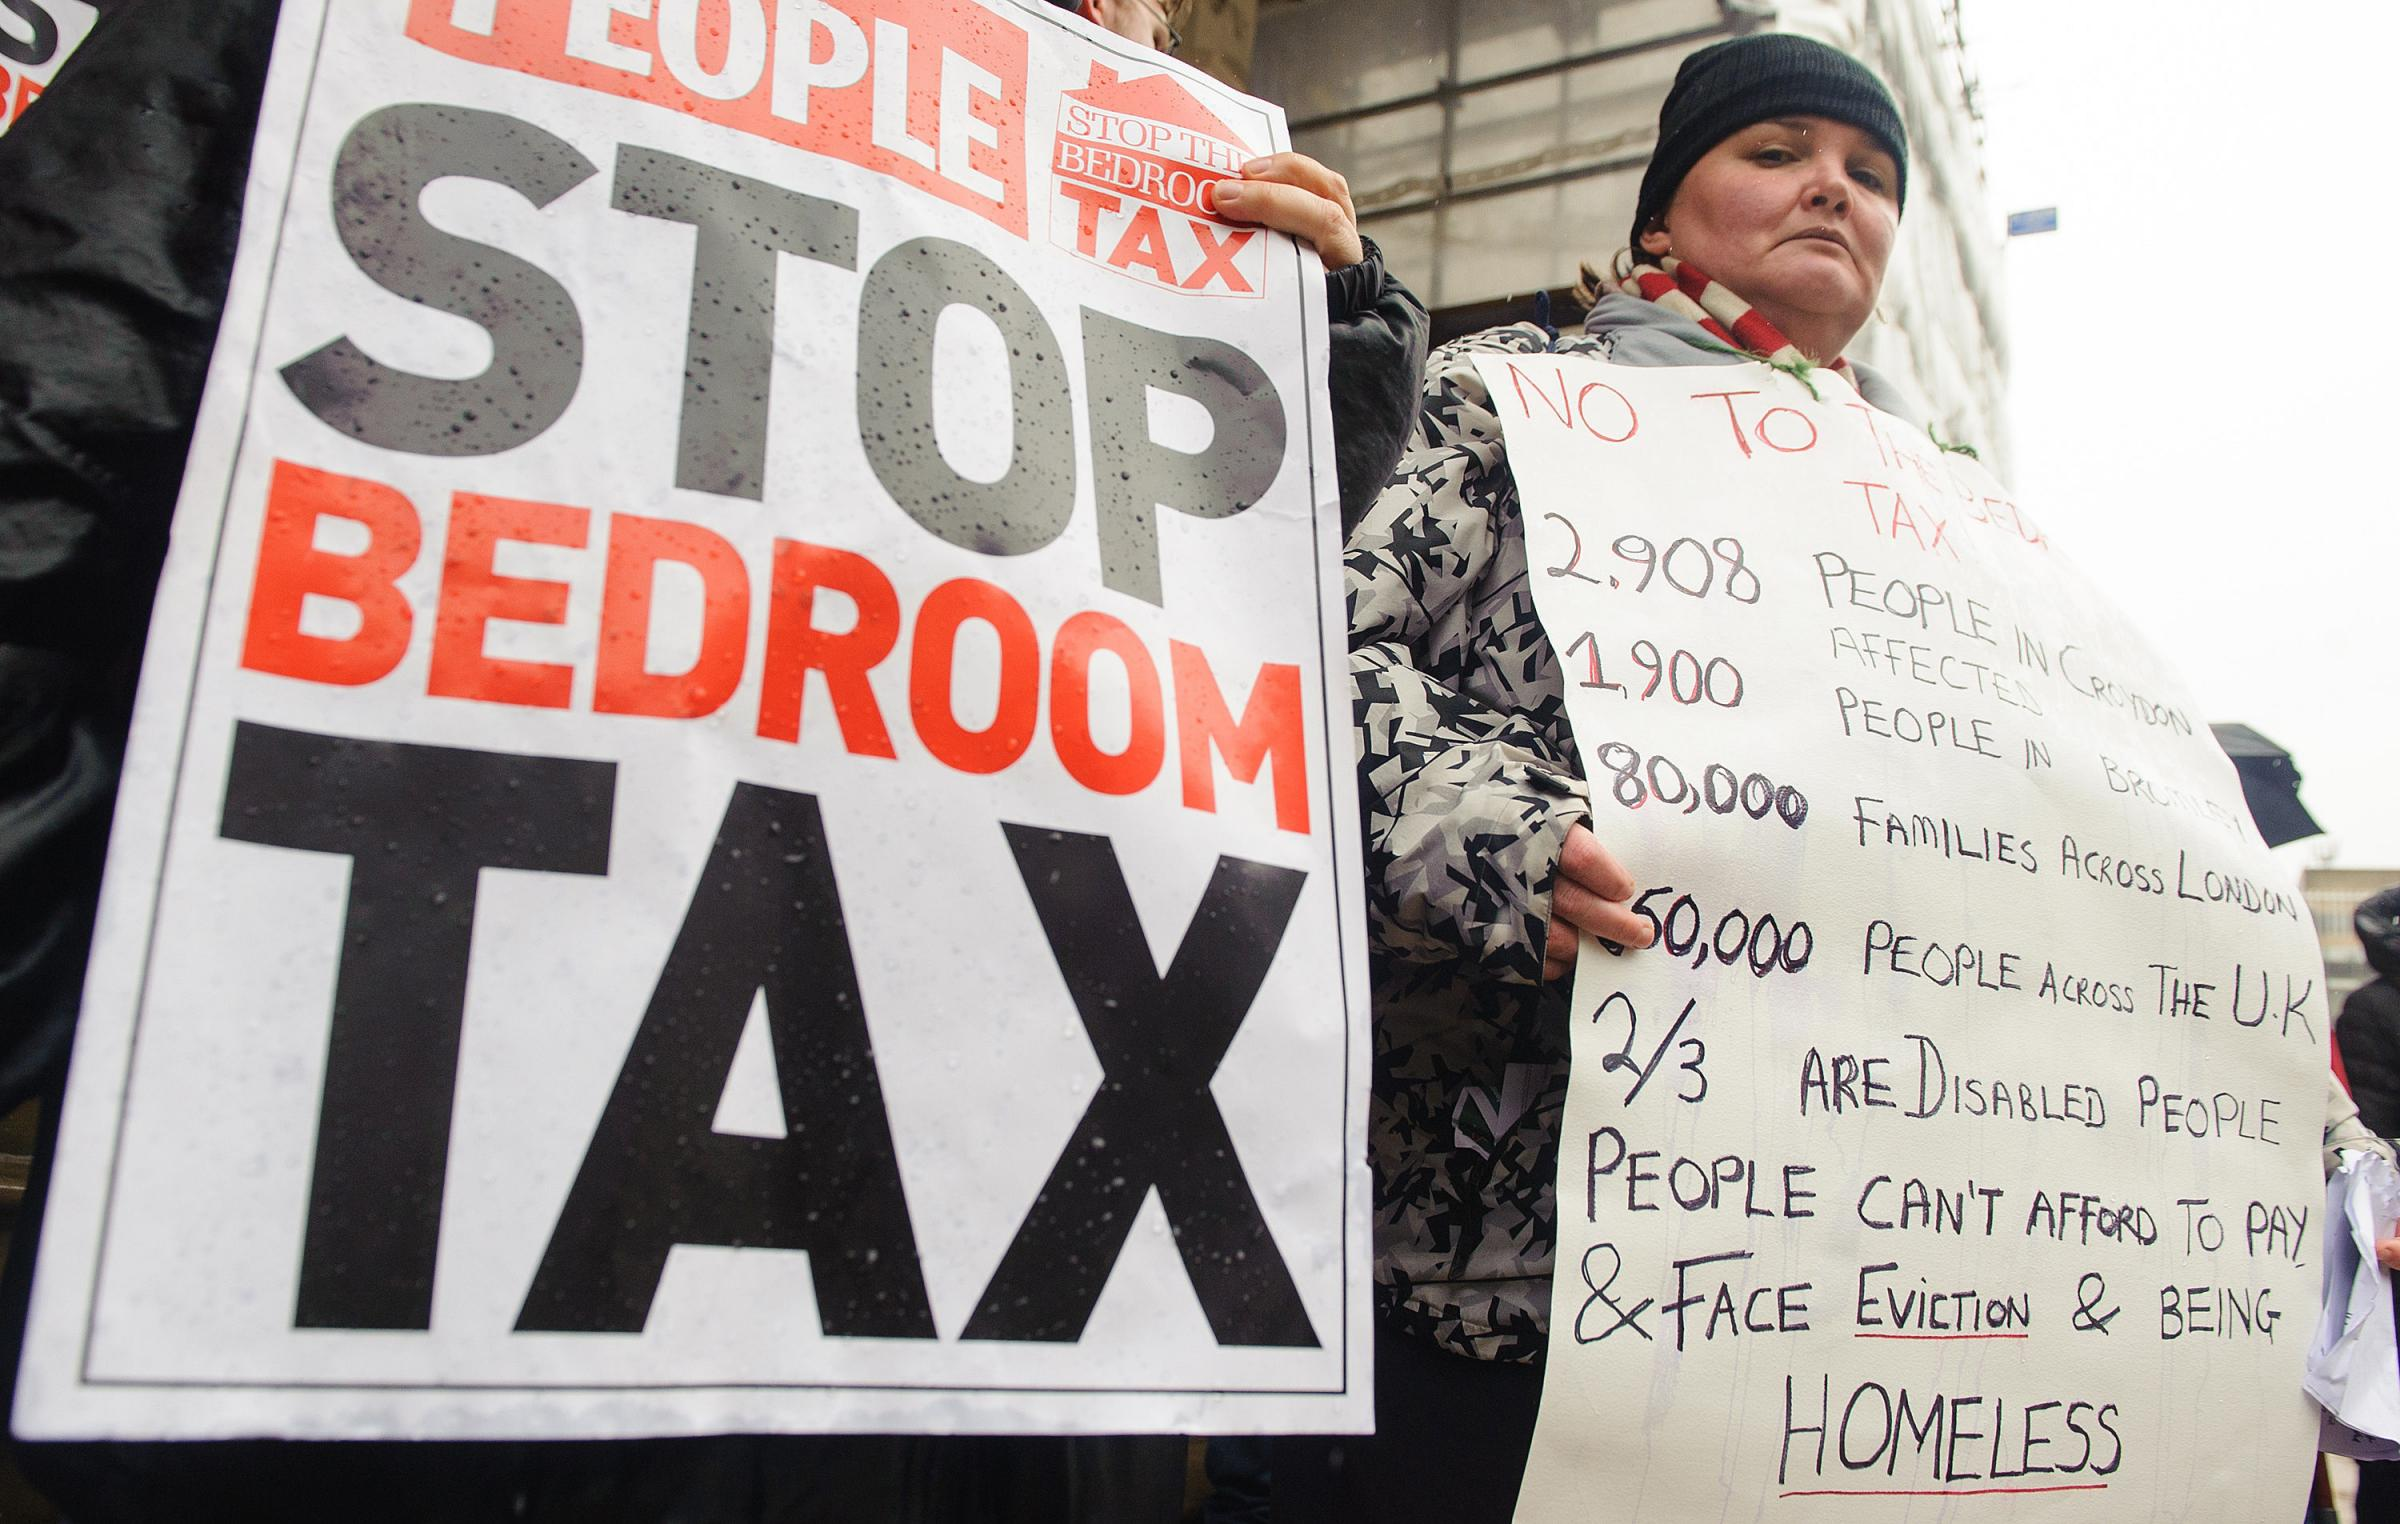 Changes to controversial bedroom tax move step closer